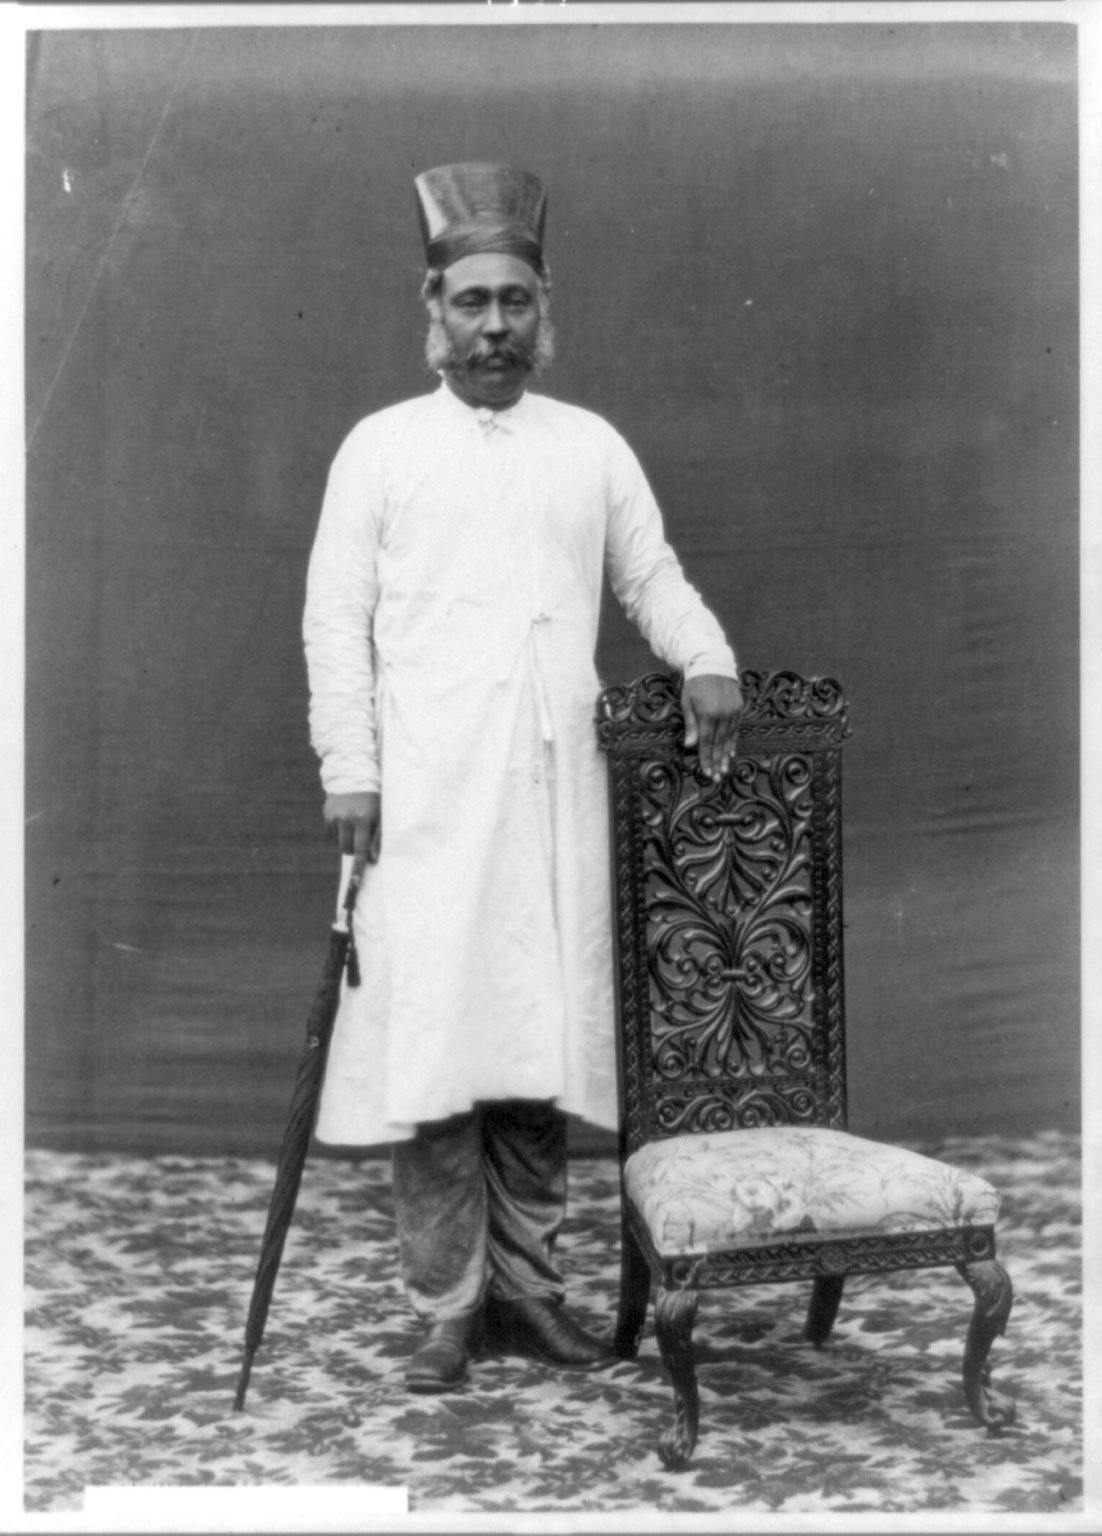 Standing Portrait of a Indian Man - Date Unknown